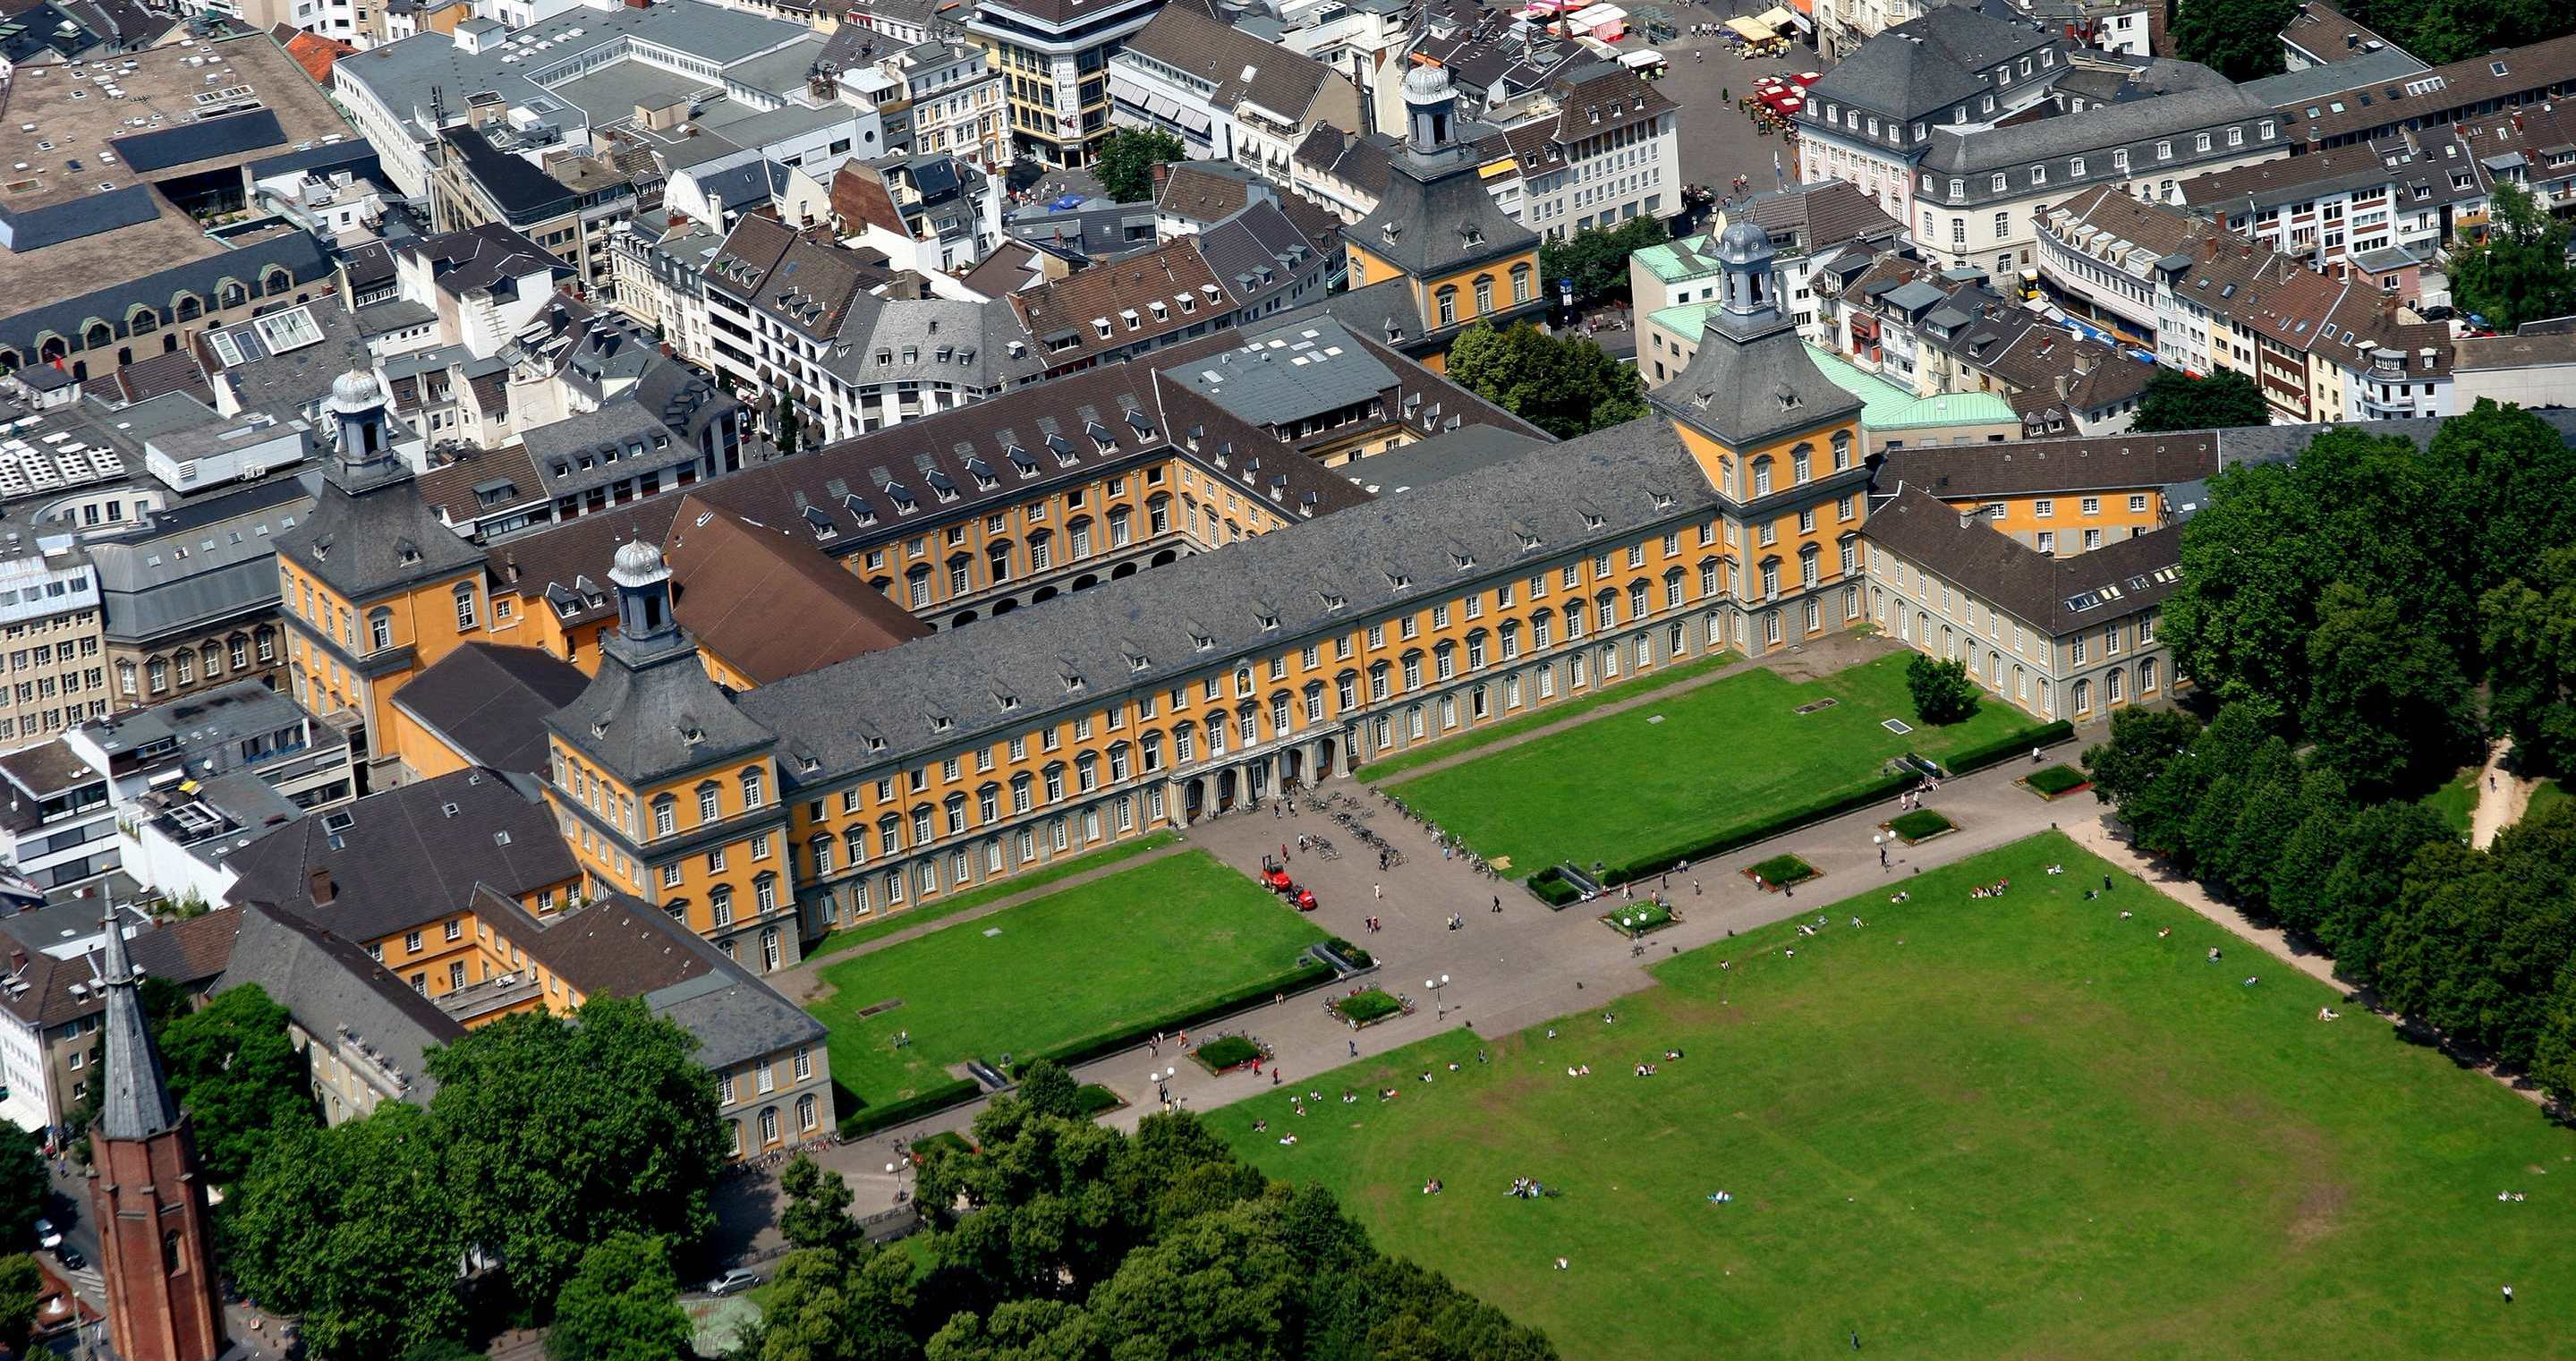 Aerial image of the central building of the university, Copyright: Peter Sondermann / University Bon